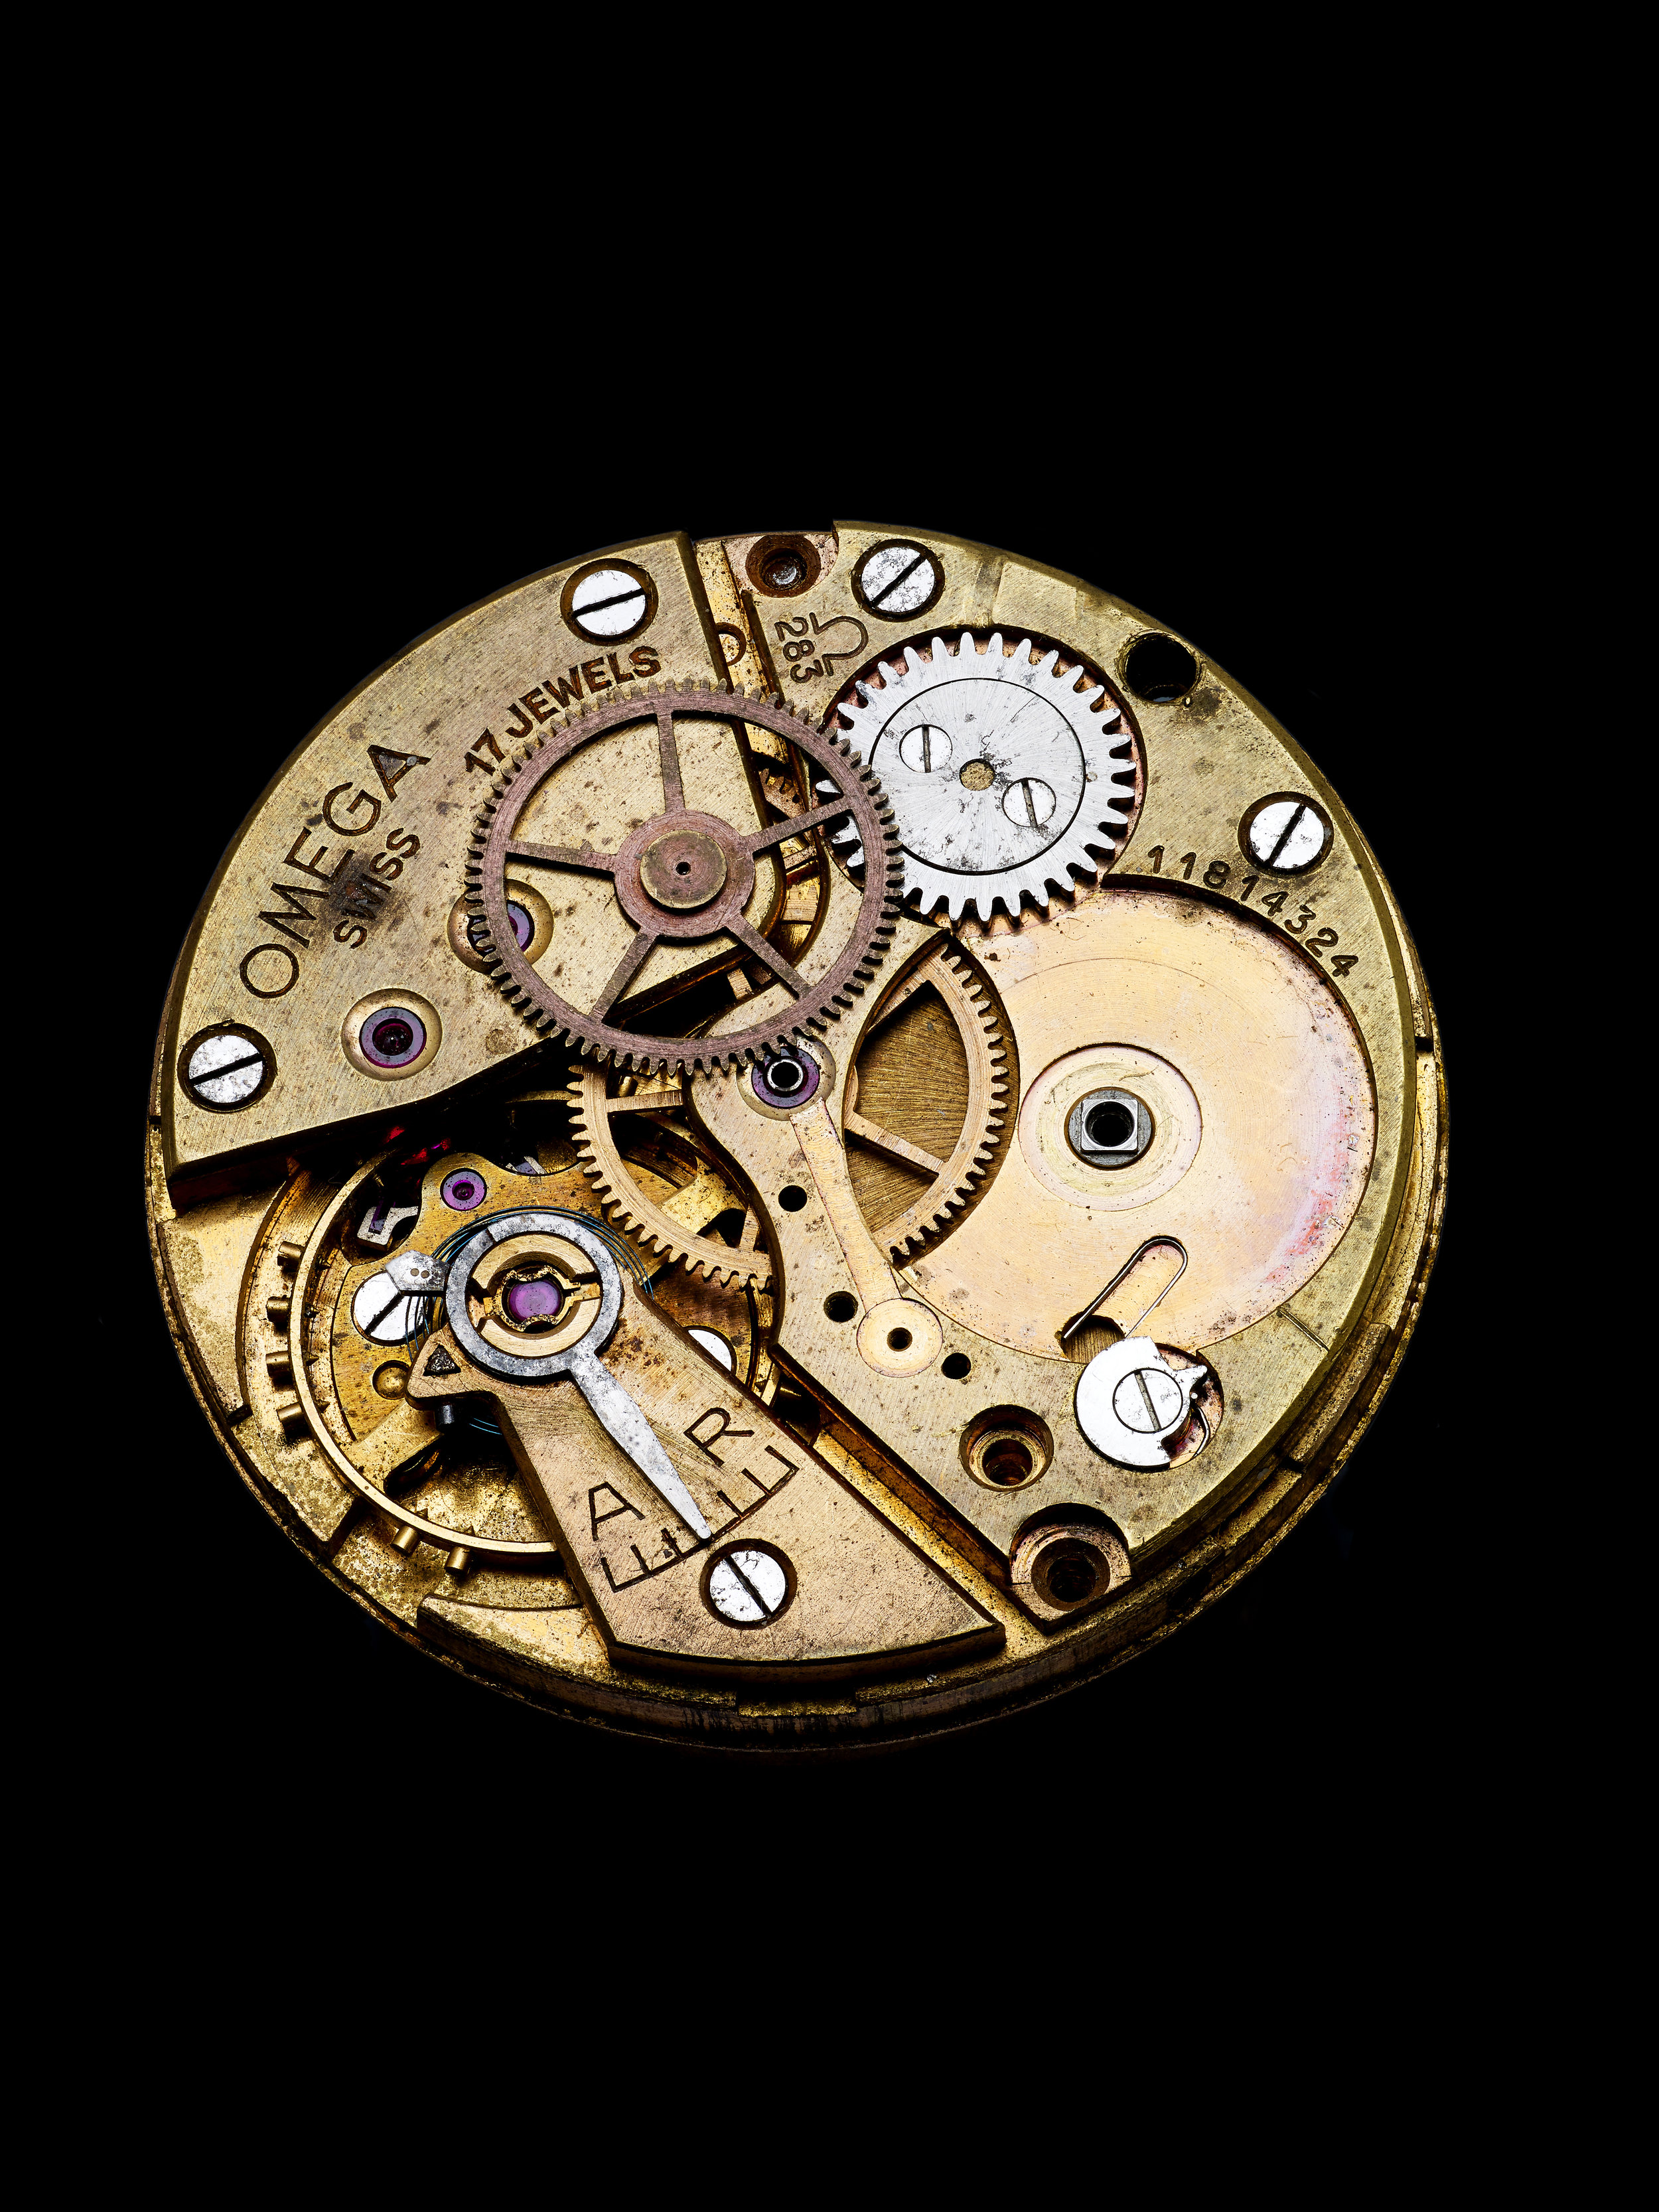 Vintage Omega movement before re-commissioning